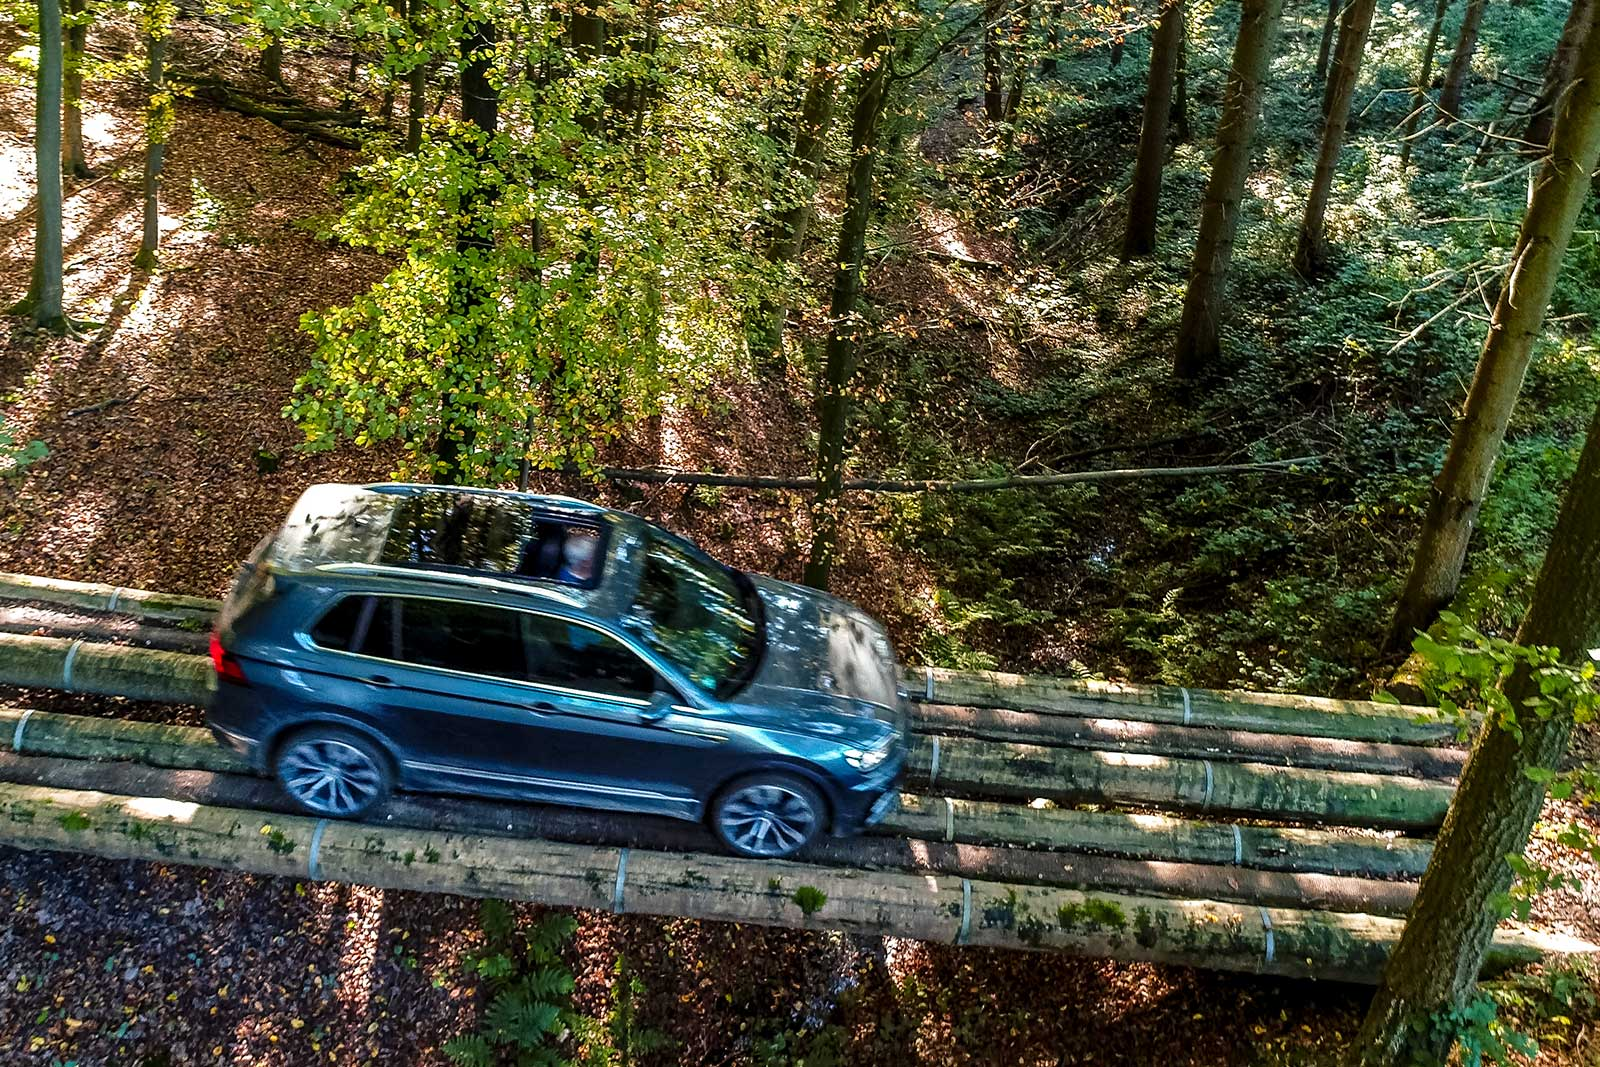 Test vehicle drives over tree trunks in our forest